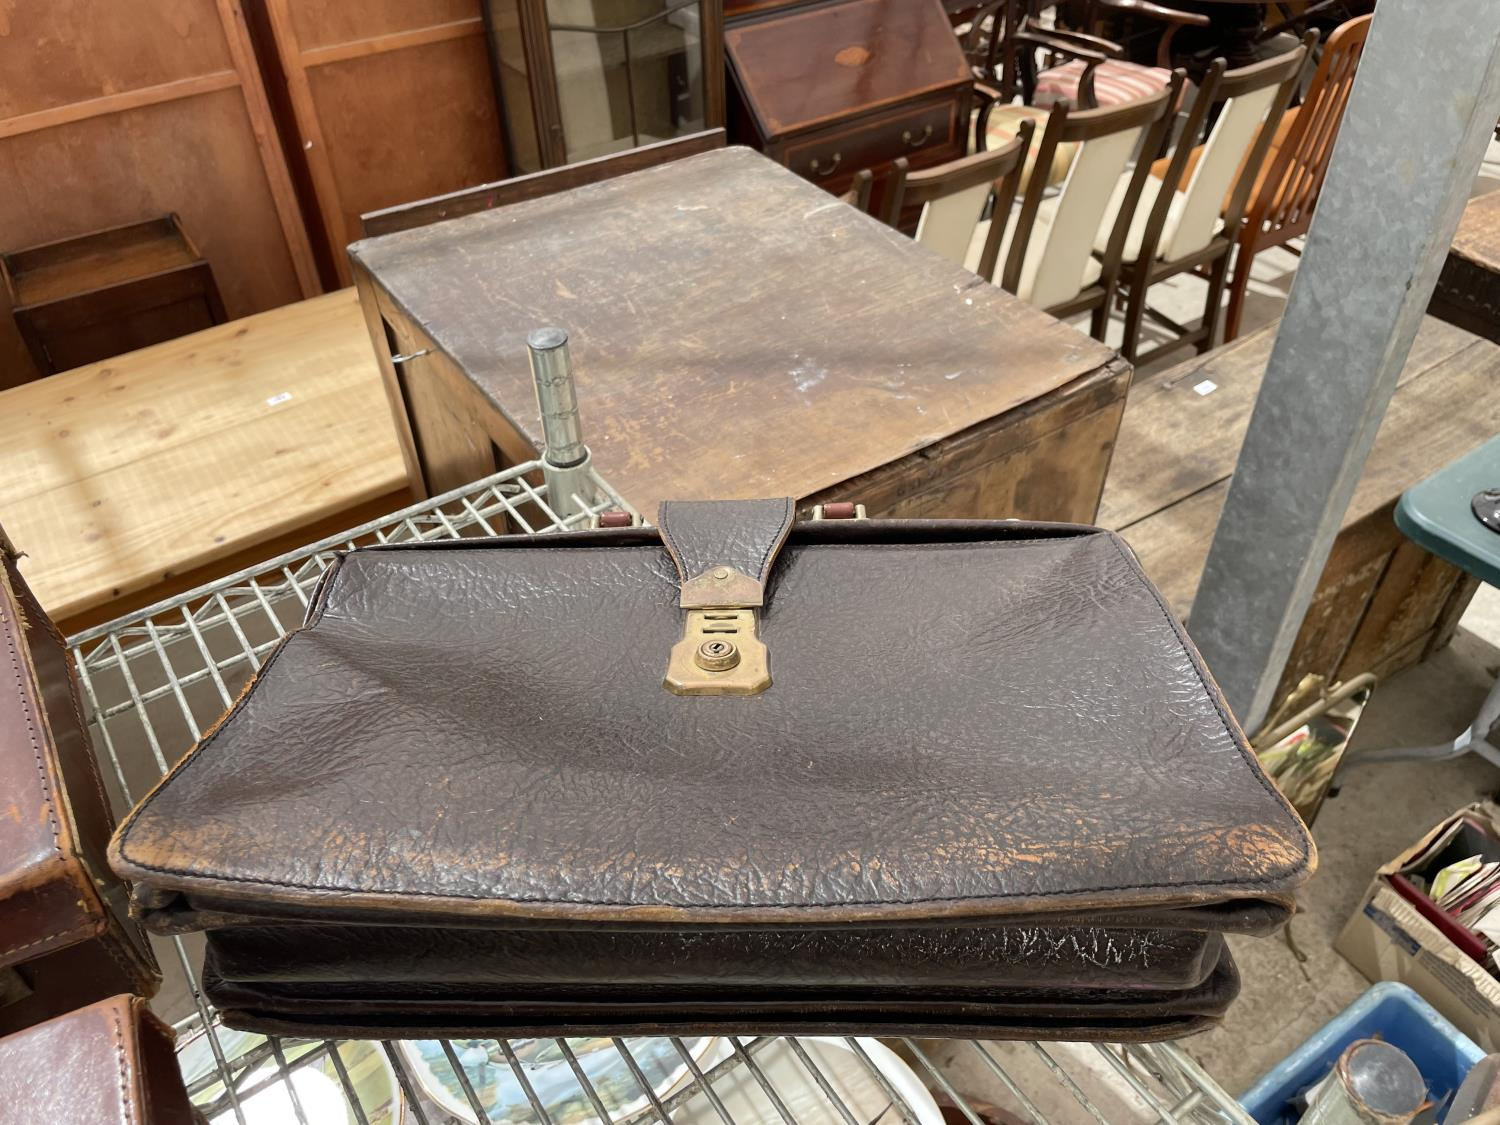 AN ASSORTMENT OF VINTAGE LEATHER TRAVEL CASES - Image 4 of 6